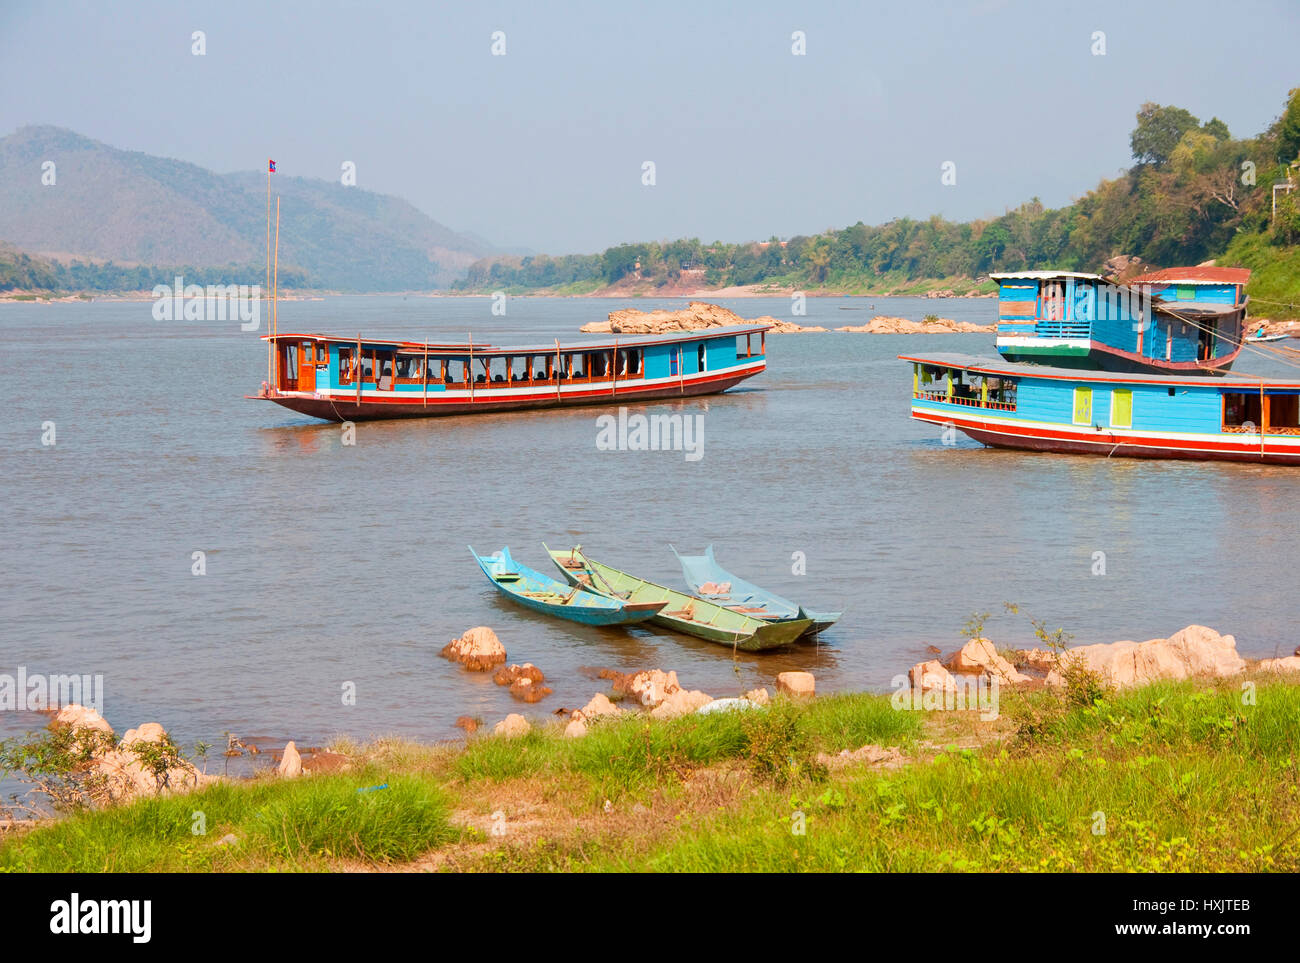 Boats on Mekong River near Luang Prabang, Laos. - Stock Image